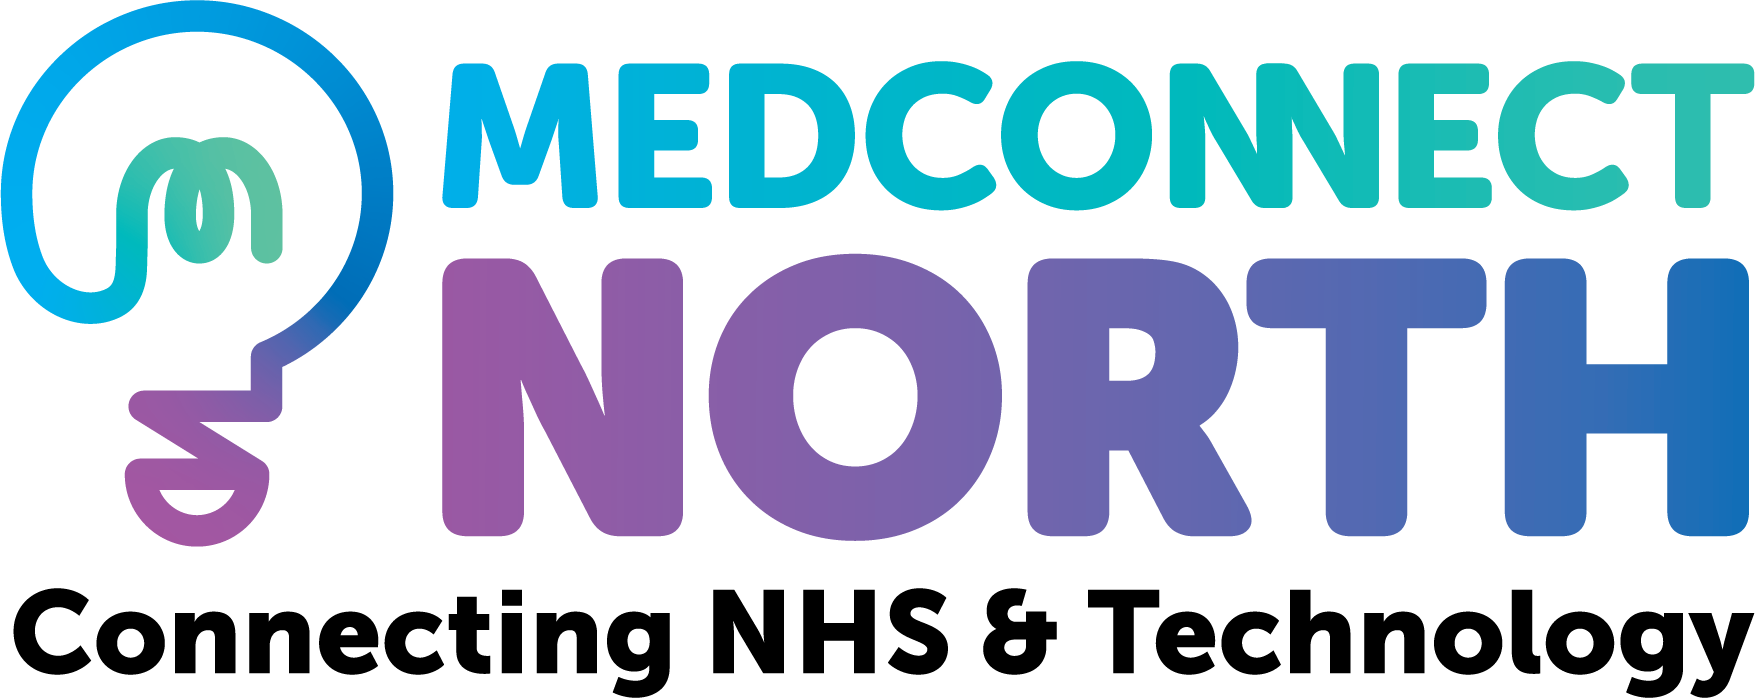 MedConnect North provides free support to help medical technology companies deliver high quality research in the NHS.